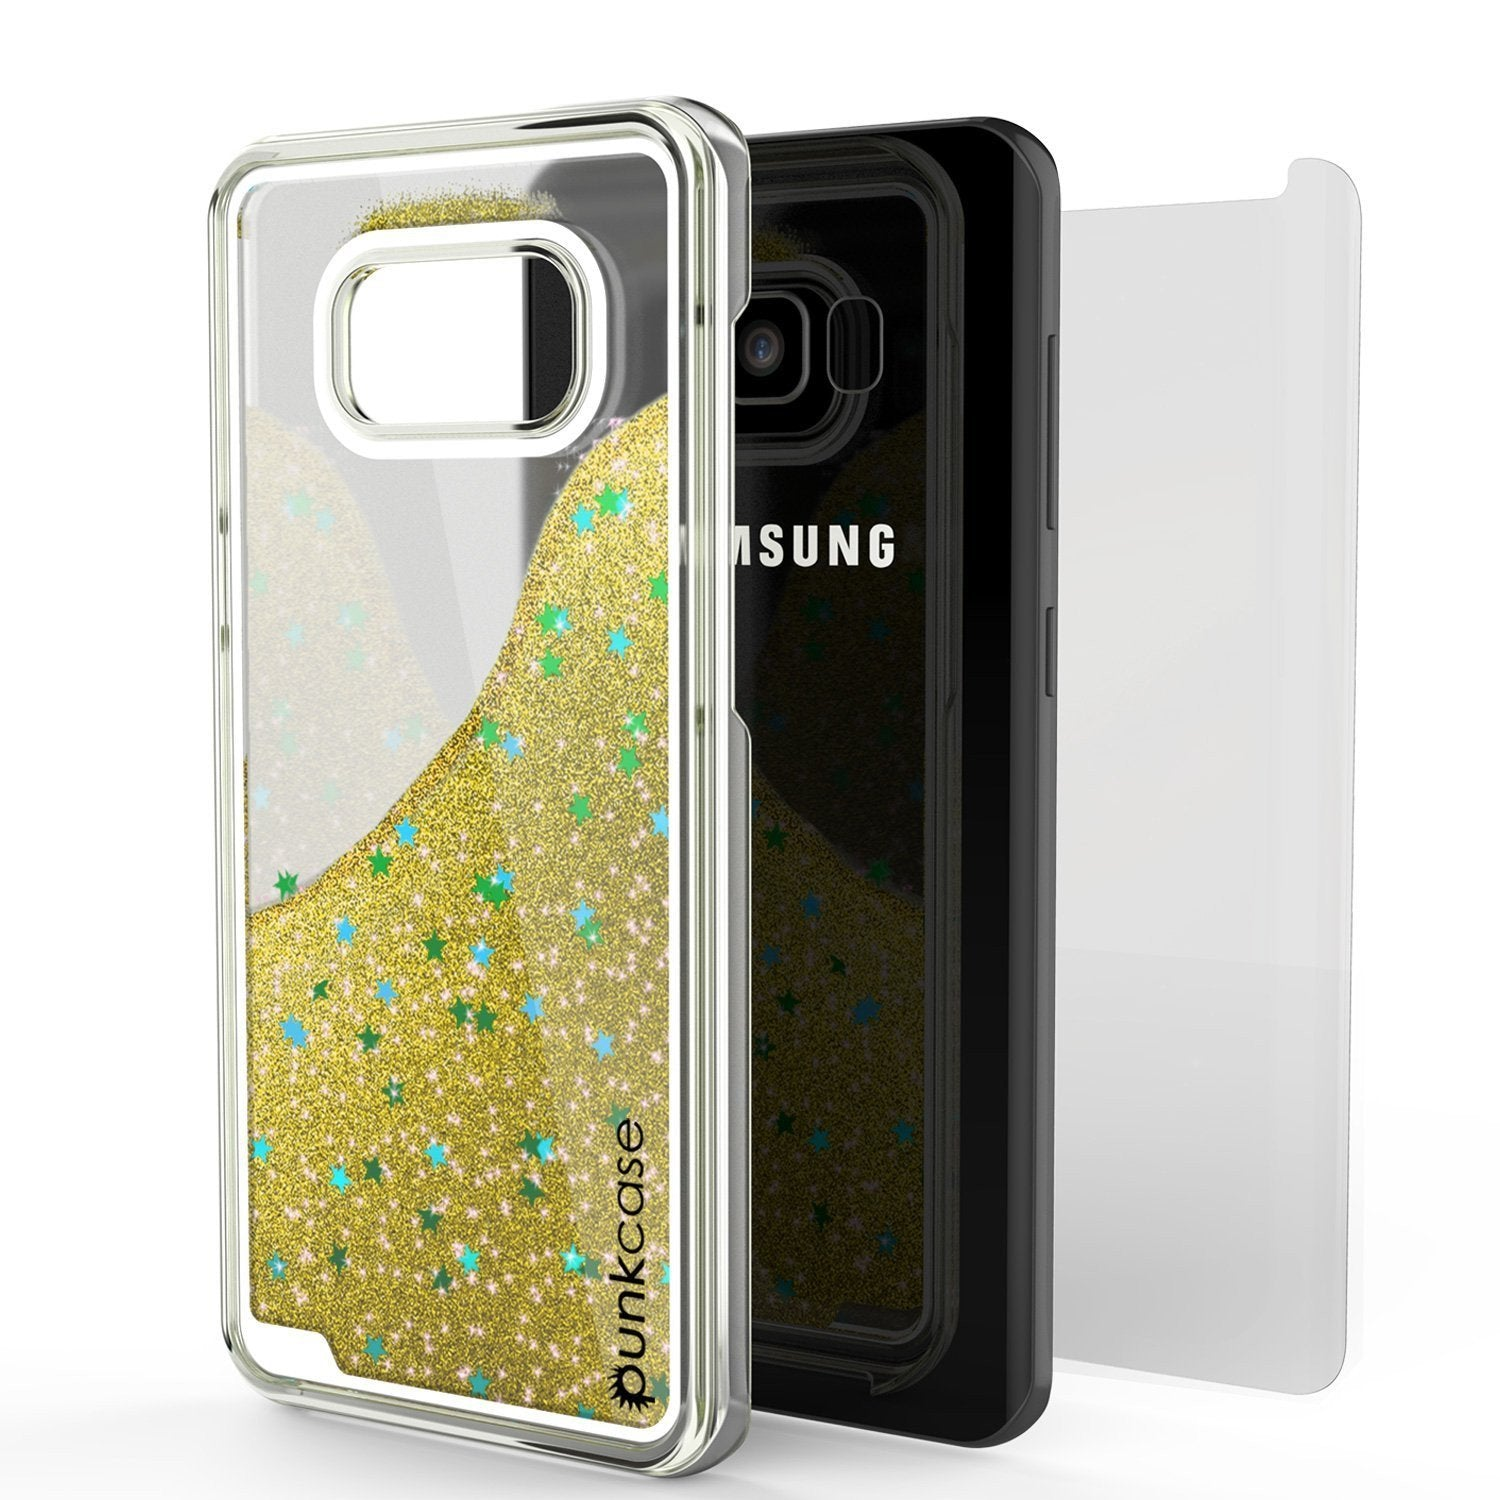 Galaxy S8 Case, Punkcase [Liquid Series] Protective Dual Layer Floating Glitter Cover [Gold]